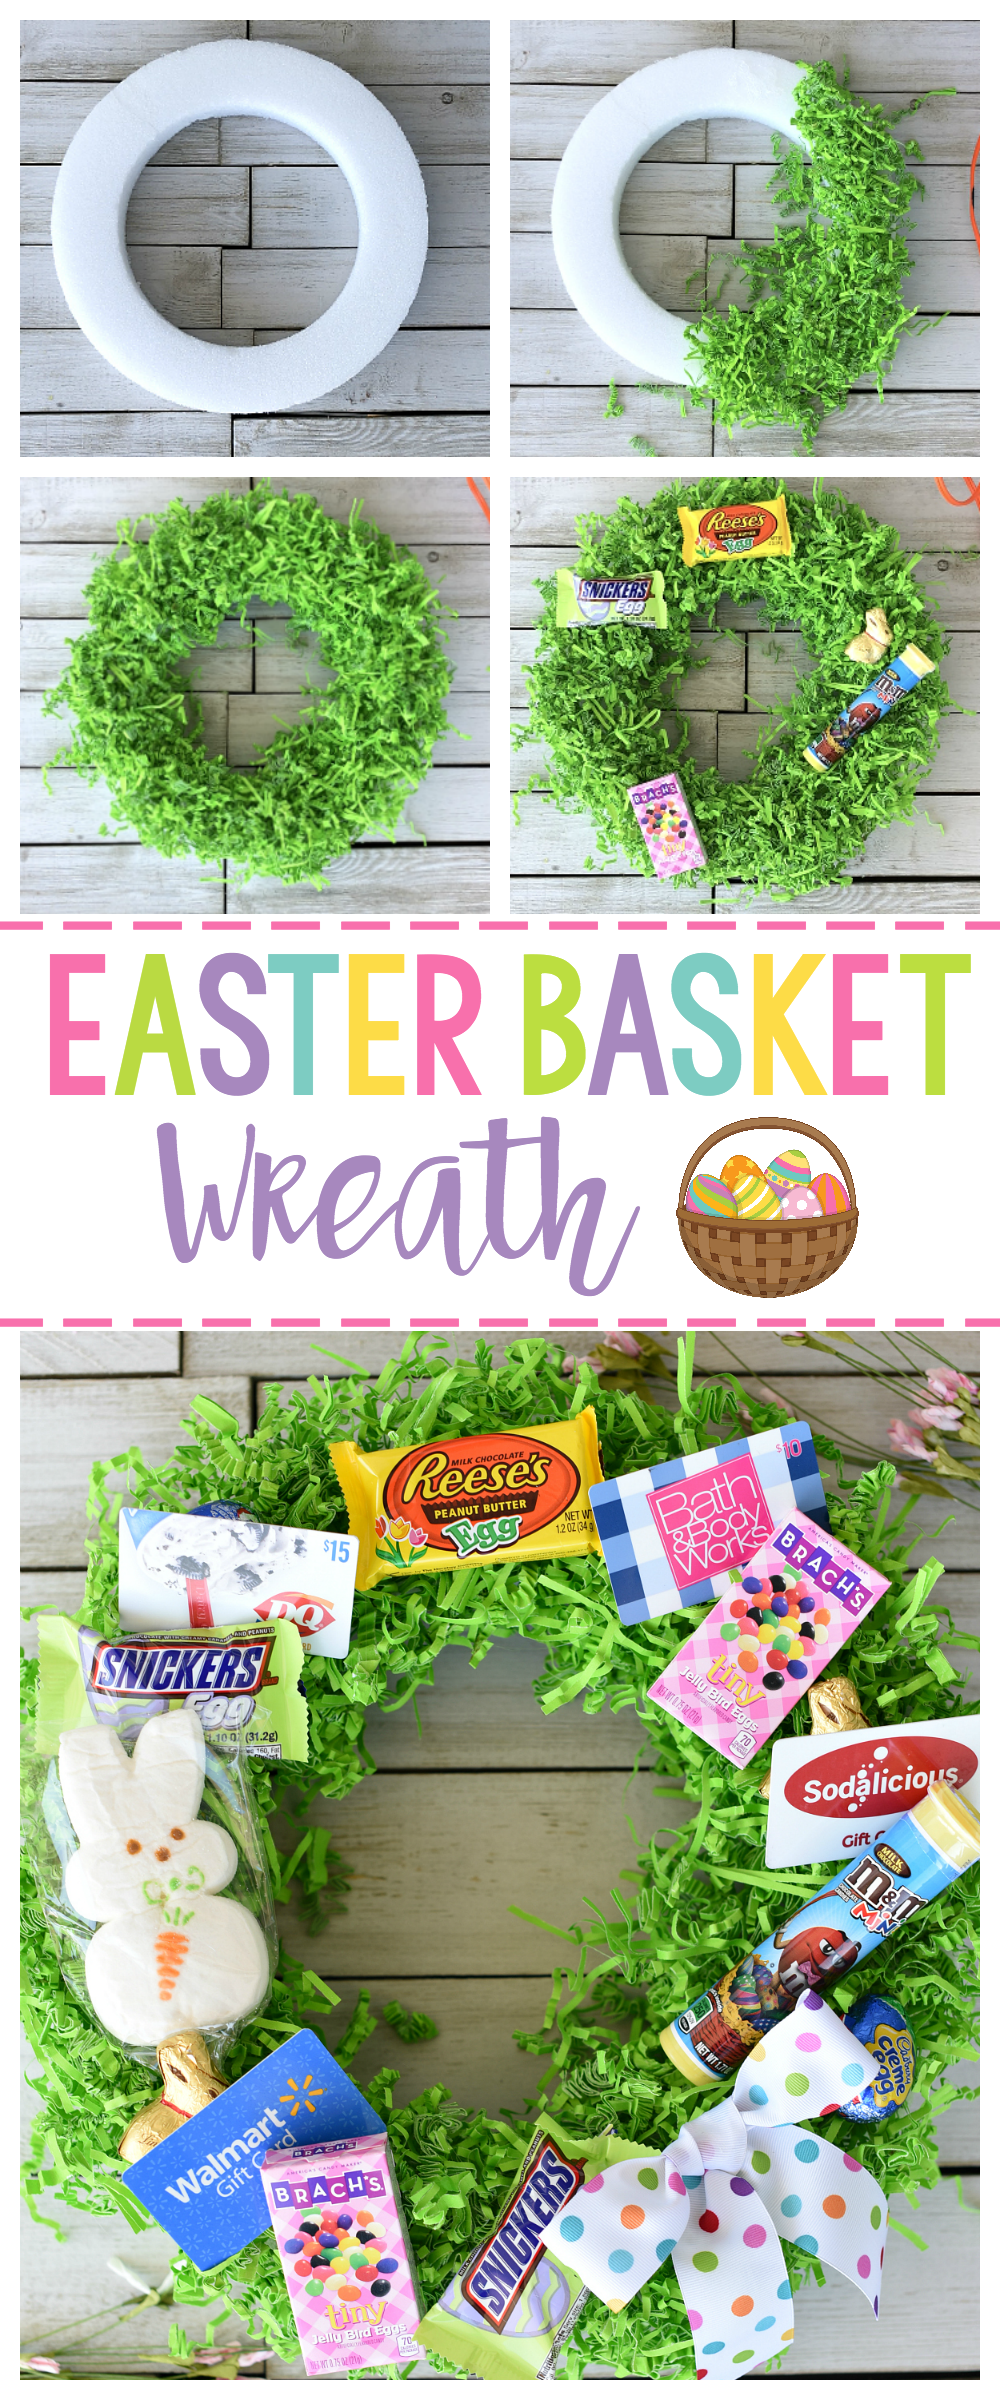 Fun easter basket ideas easter basket wreath fun squared creative and fun easter basket ideas think outside the traditional easter basket this year and negle Choice Image